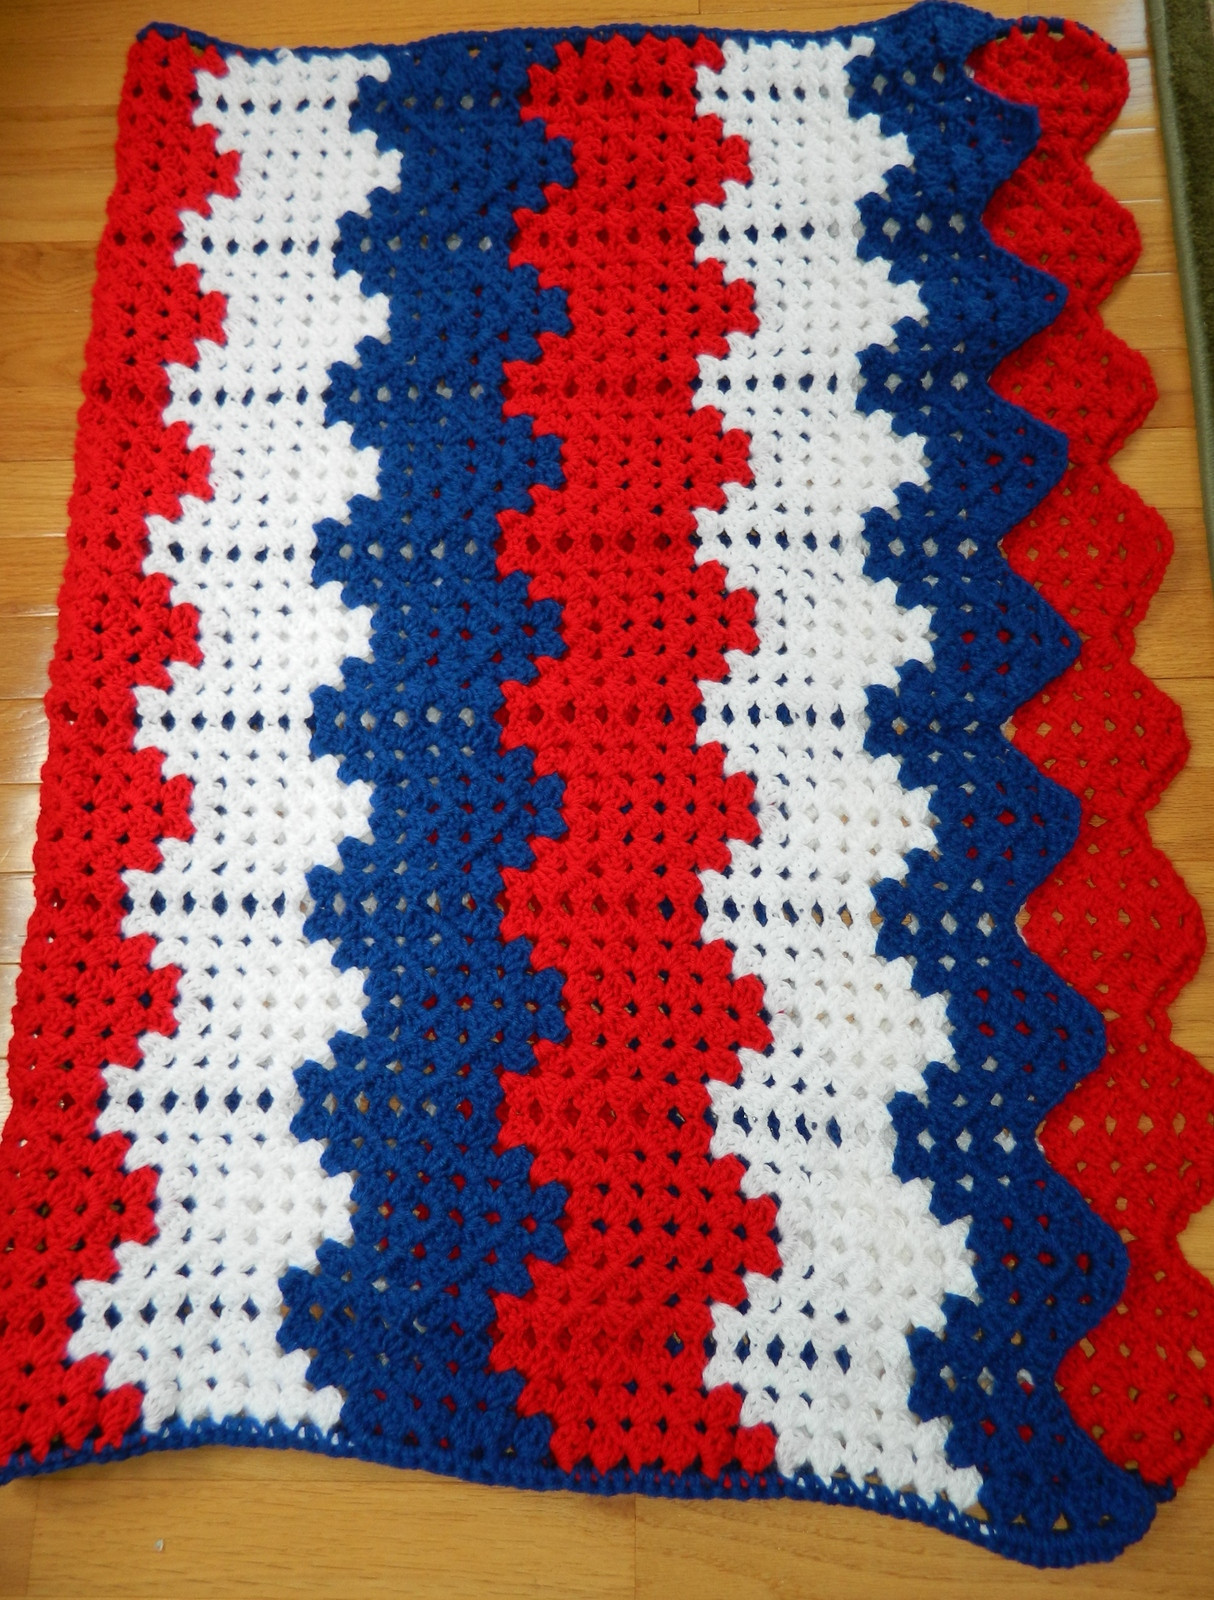 Wavy Crochet Blanket Pattern Unique Patriotic Afghan Blanket W Chevron Wavy and 20 Similar Of Amazing 44 Ideas Wavy Crochet Blanket Pattern